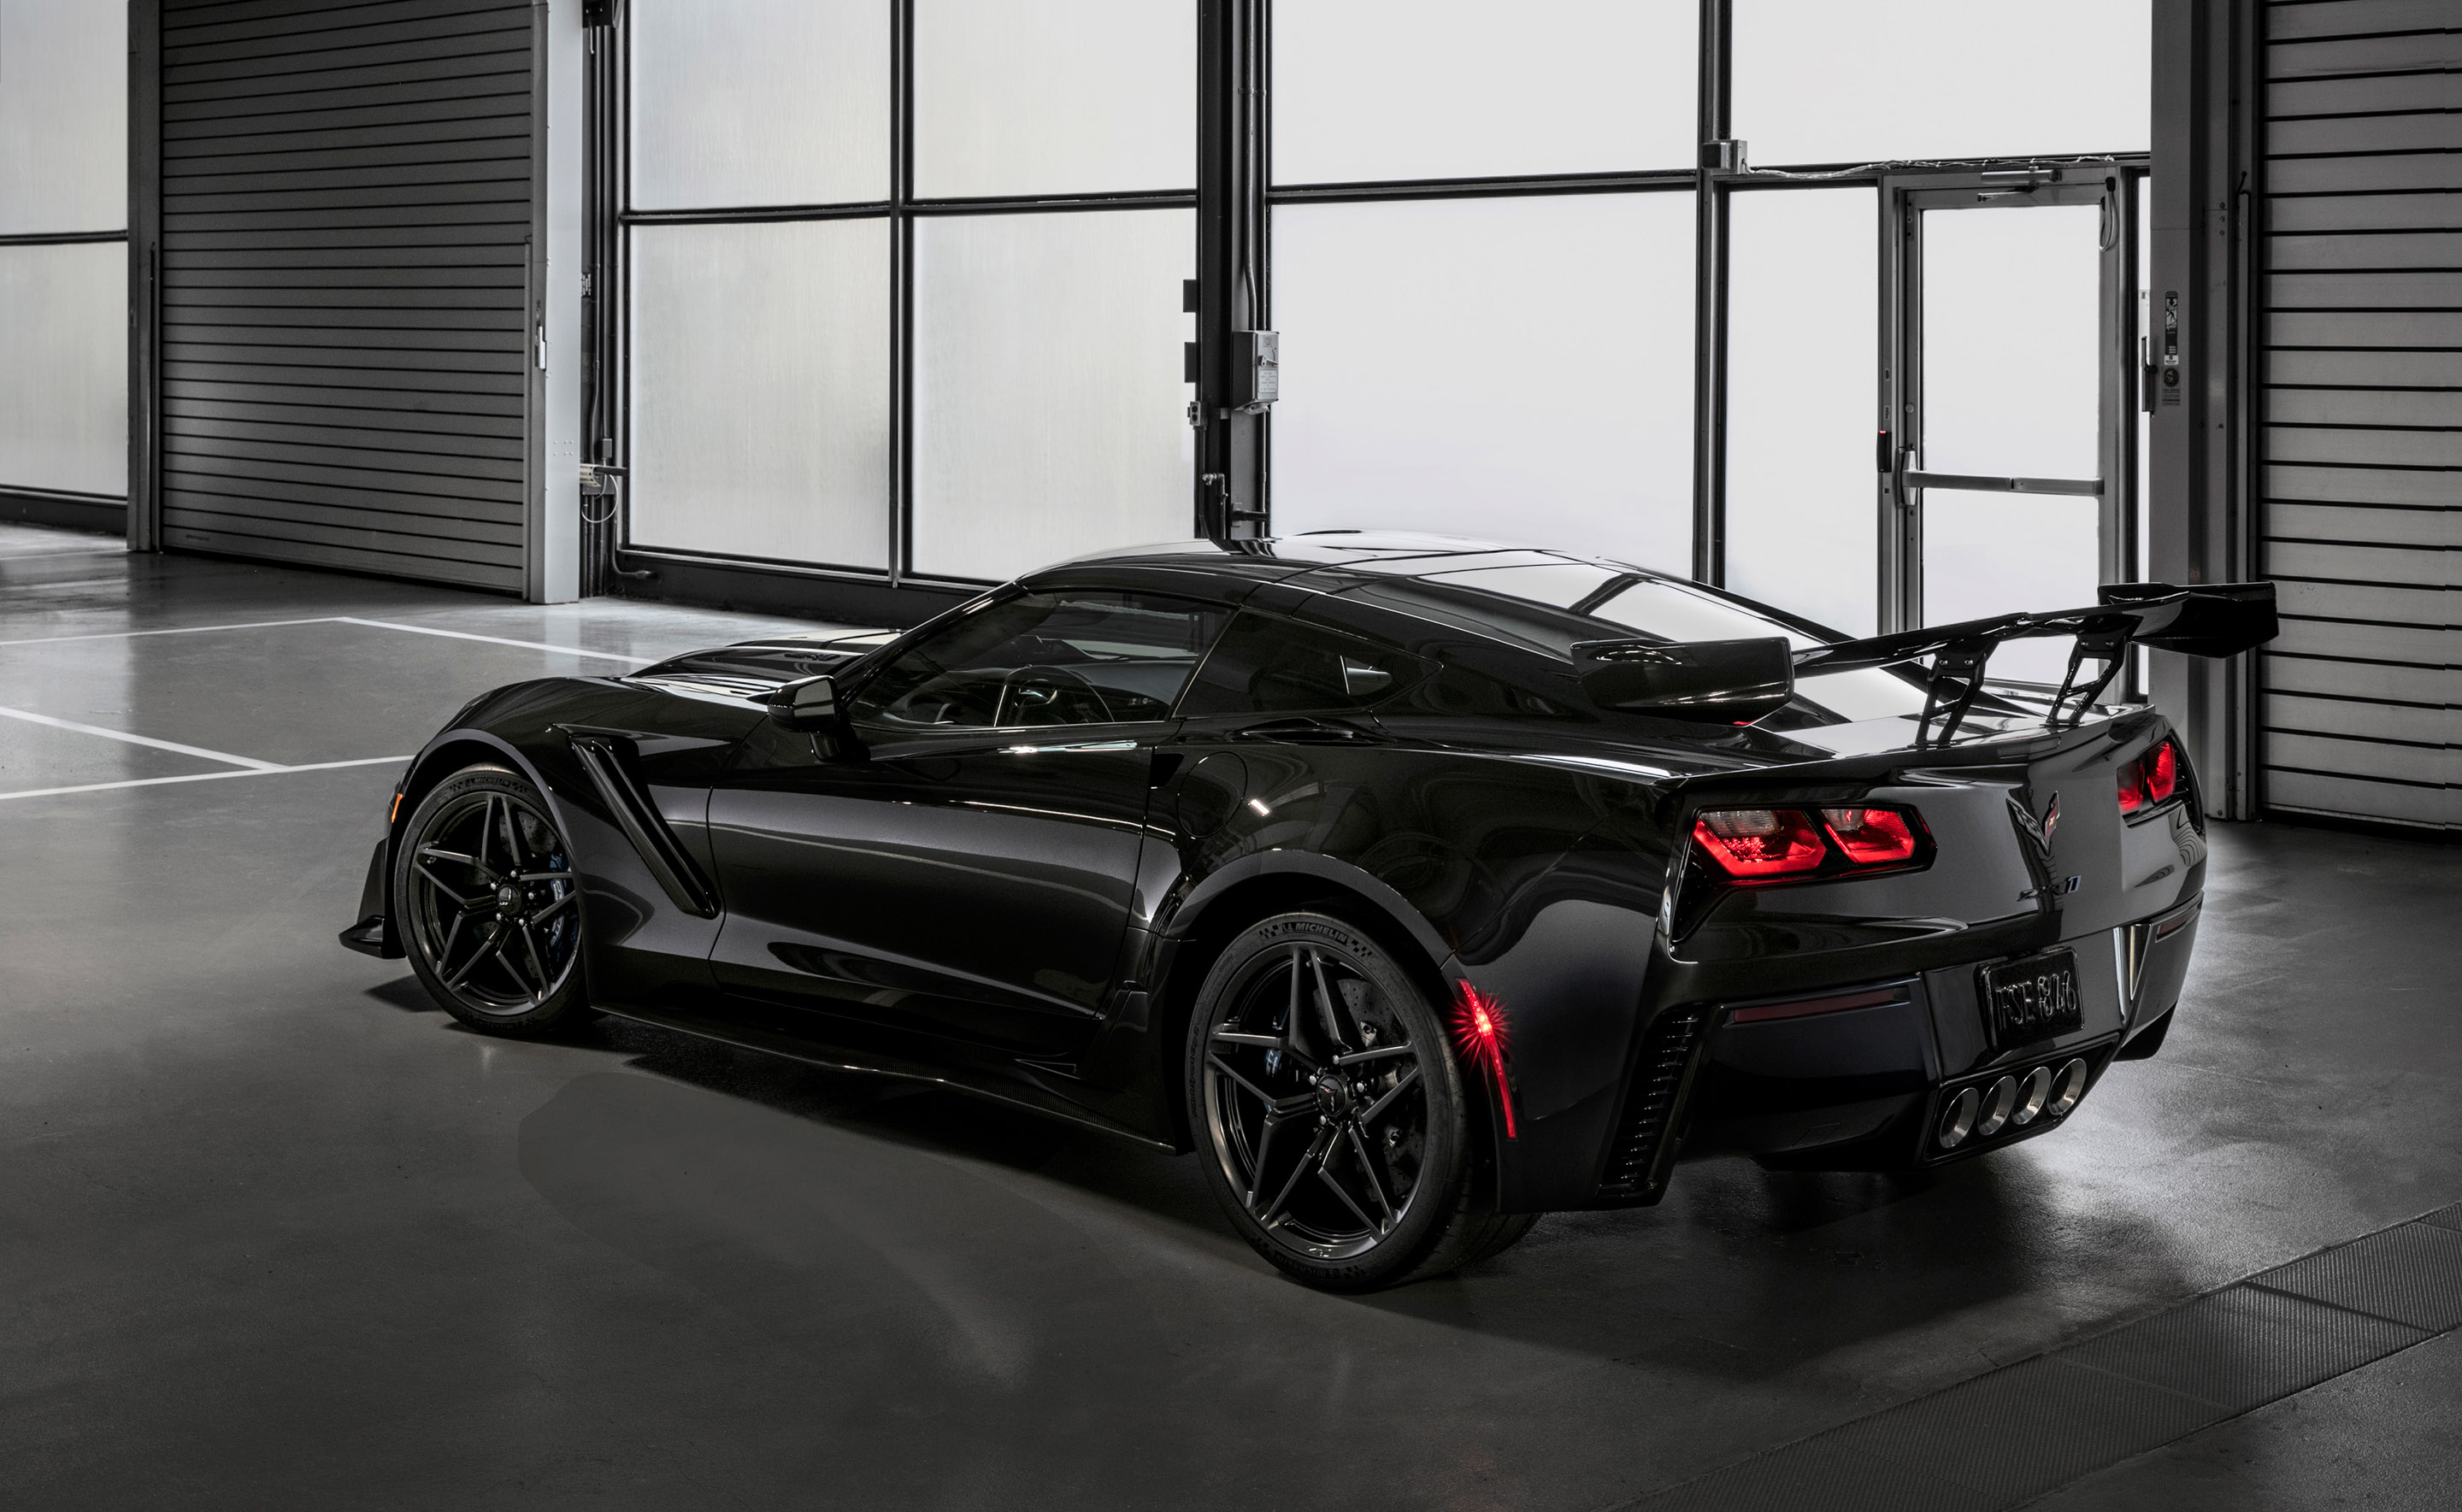 2018 Chevrolet Corvette ZR1 rear wing black